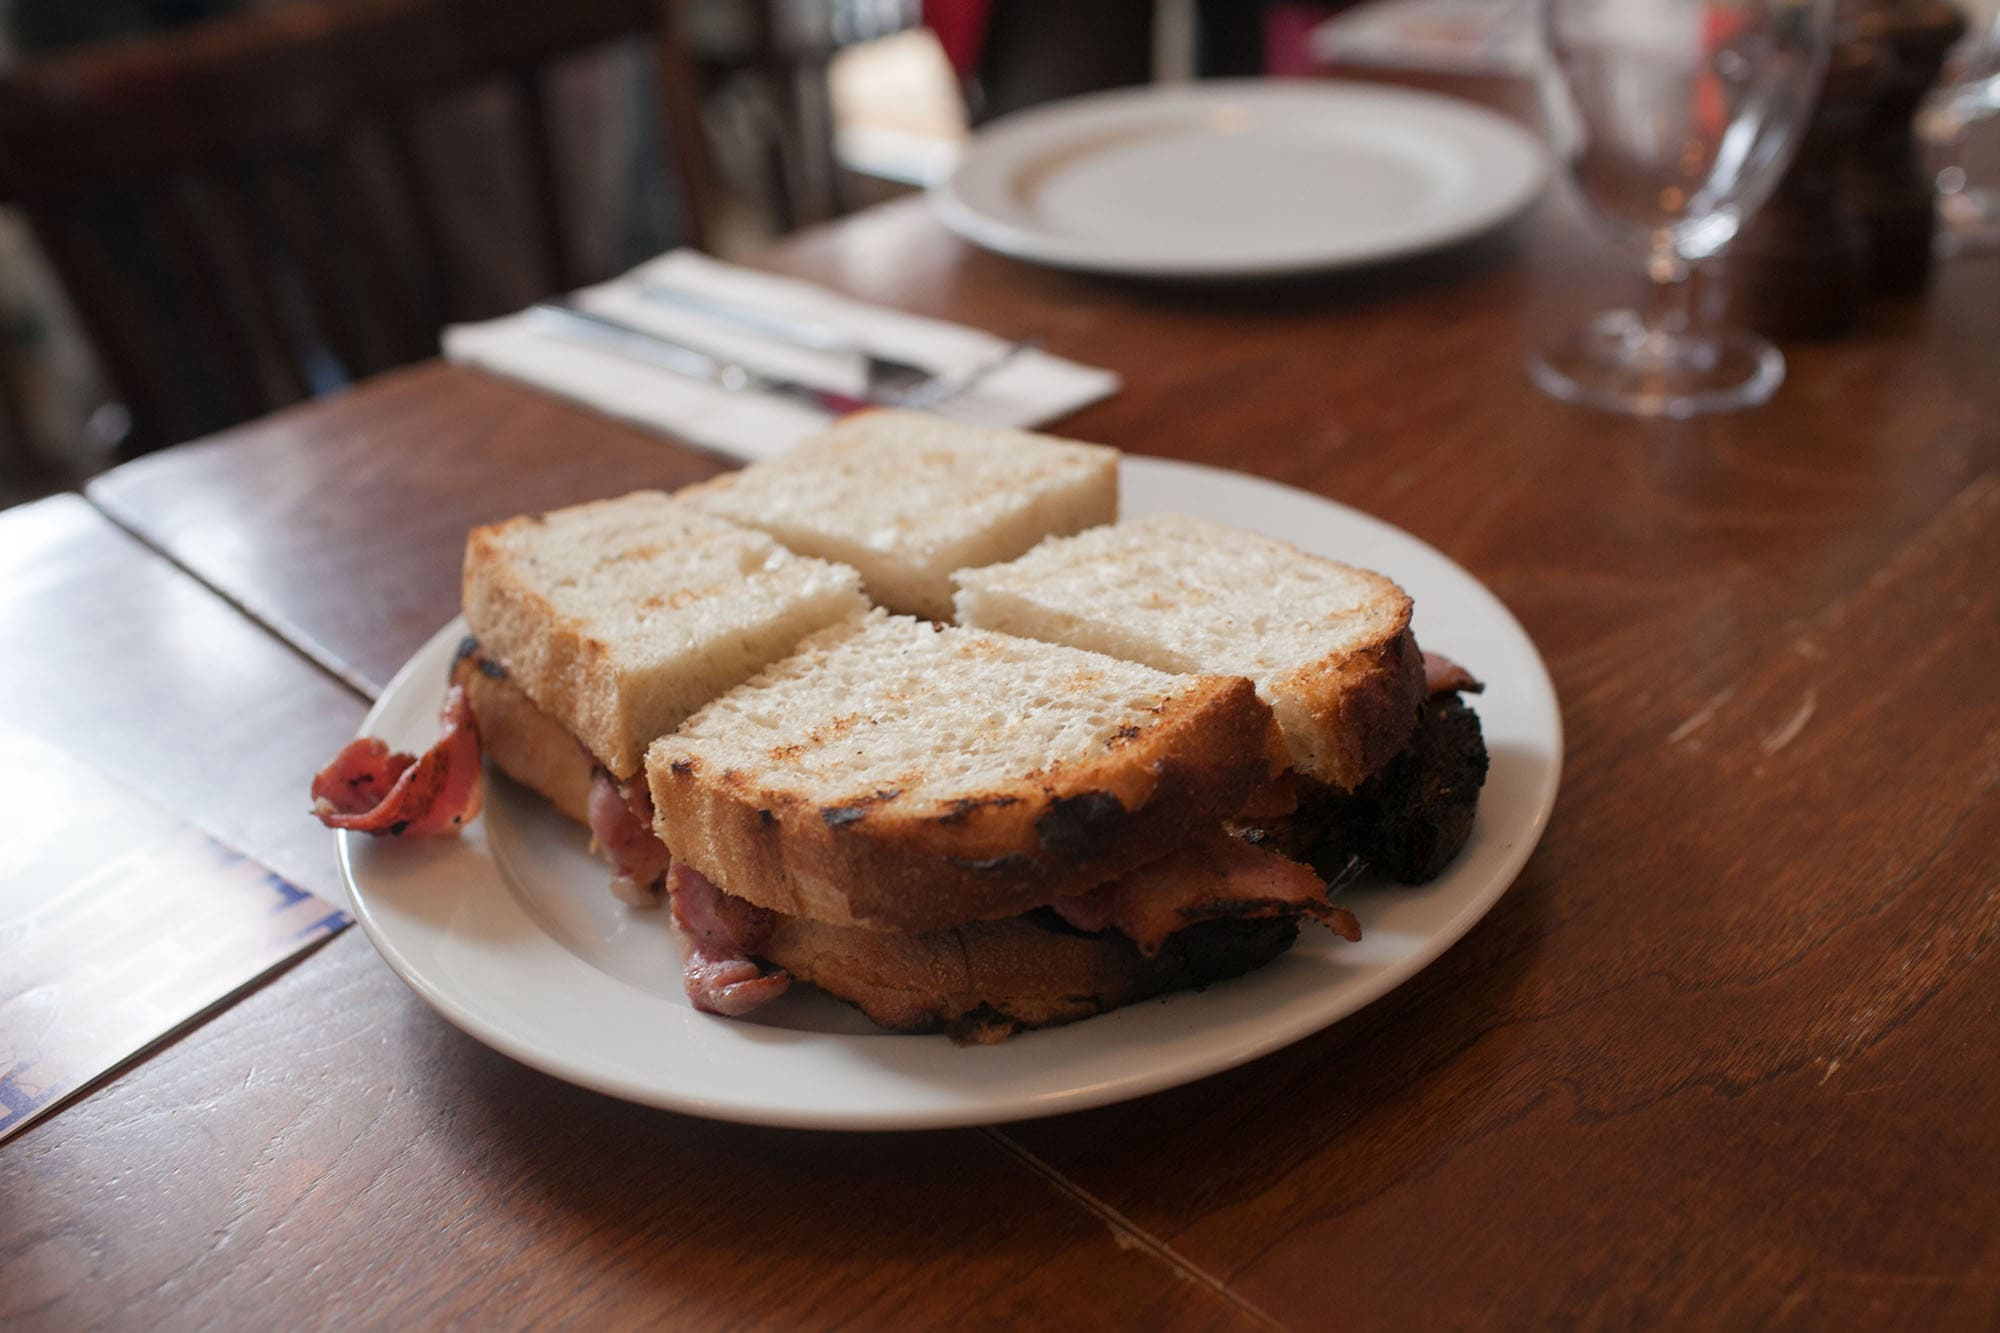 Bacon sandwich from  at the Eating London food tour in London, England